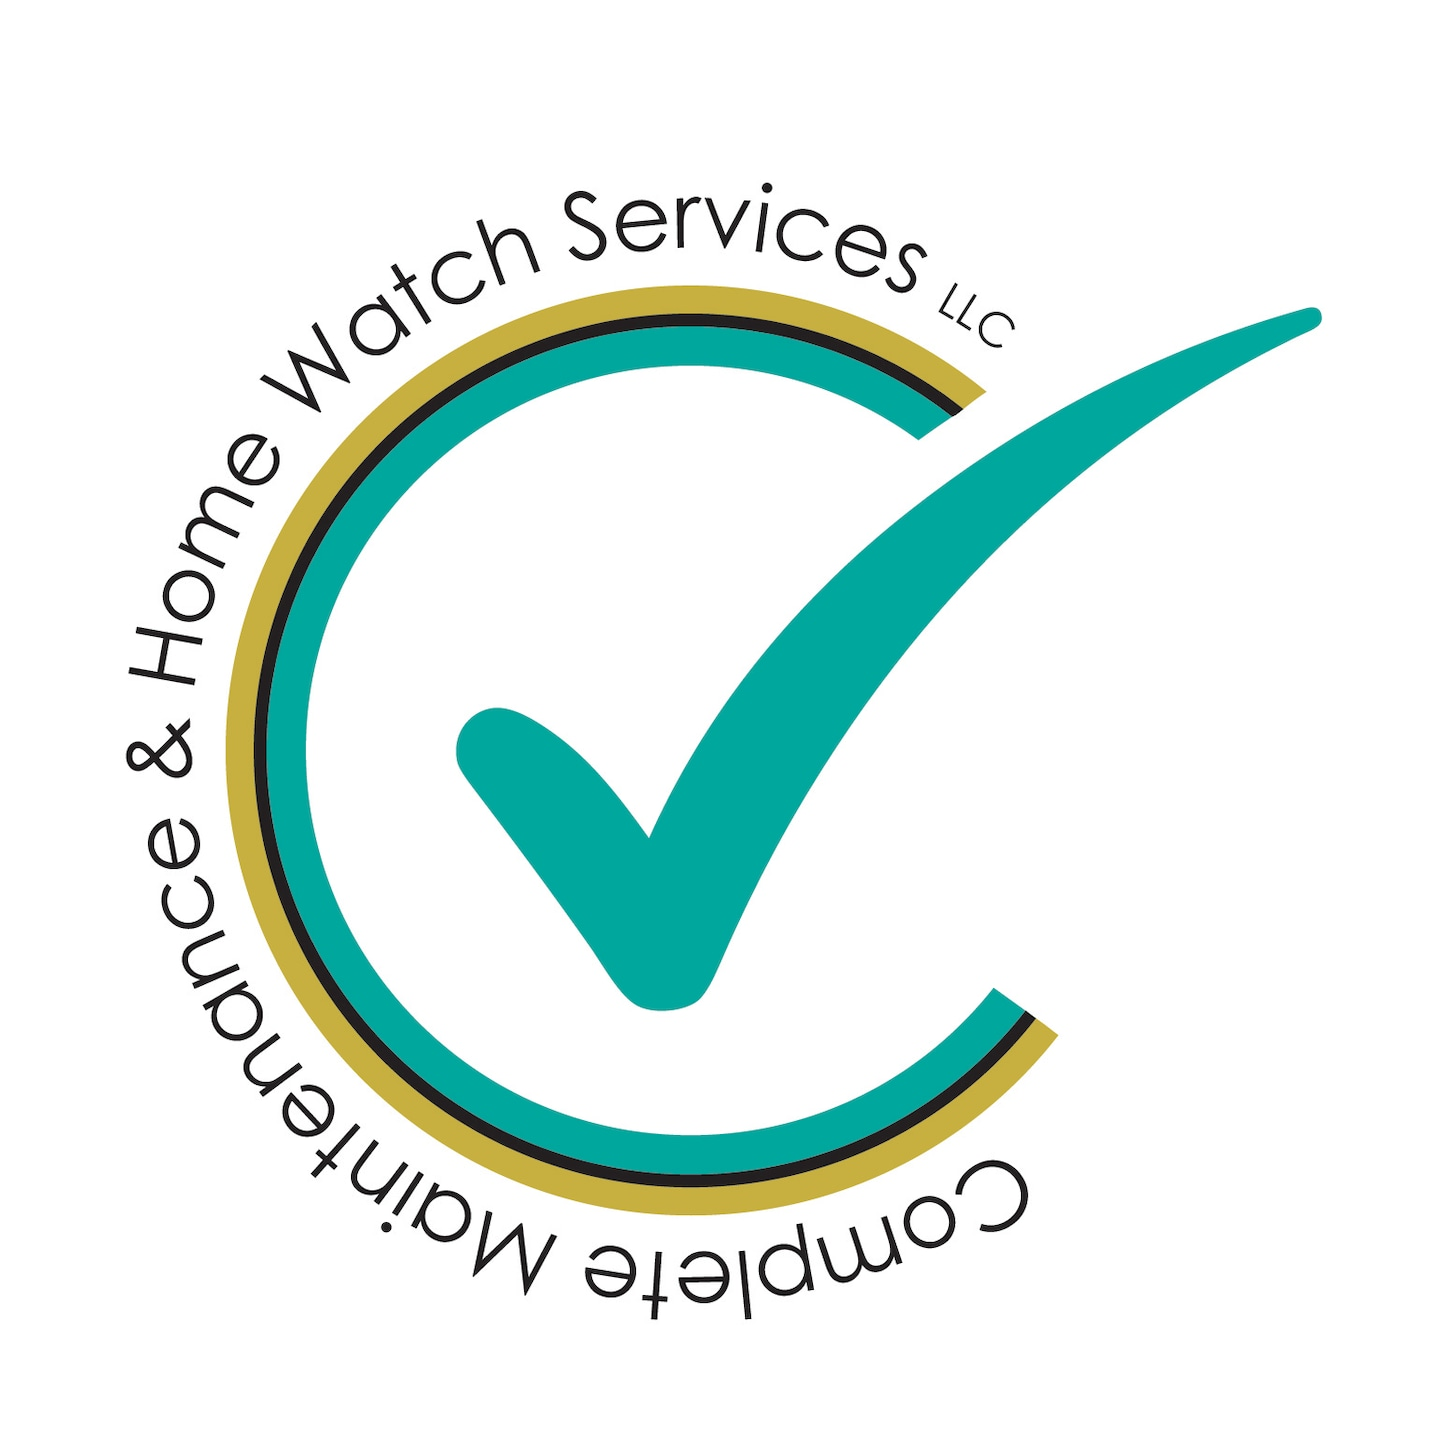 Complete Maintenance & Home Watch Services LLC